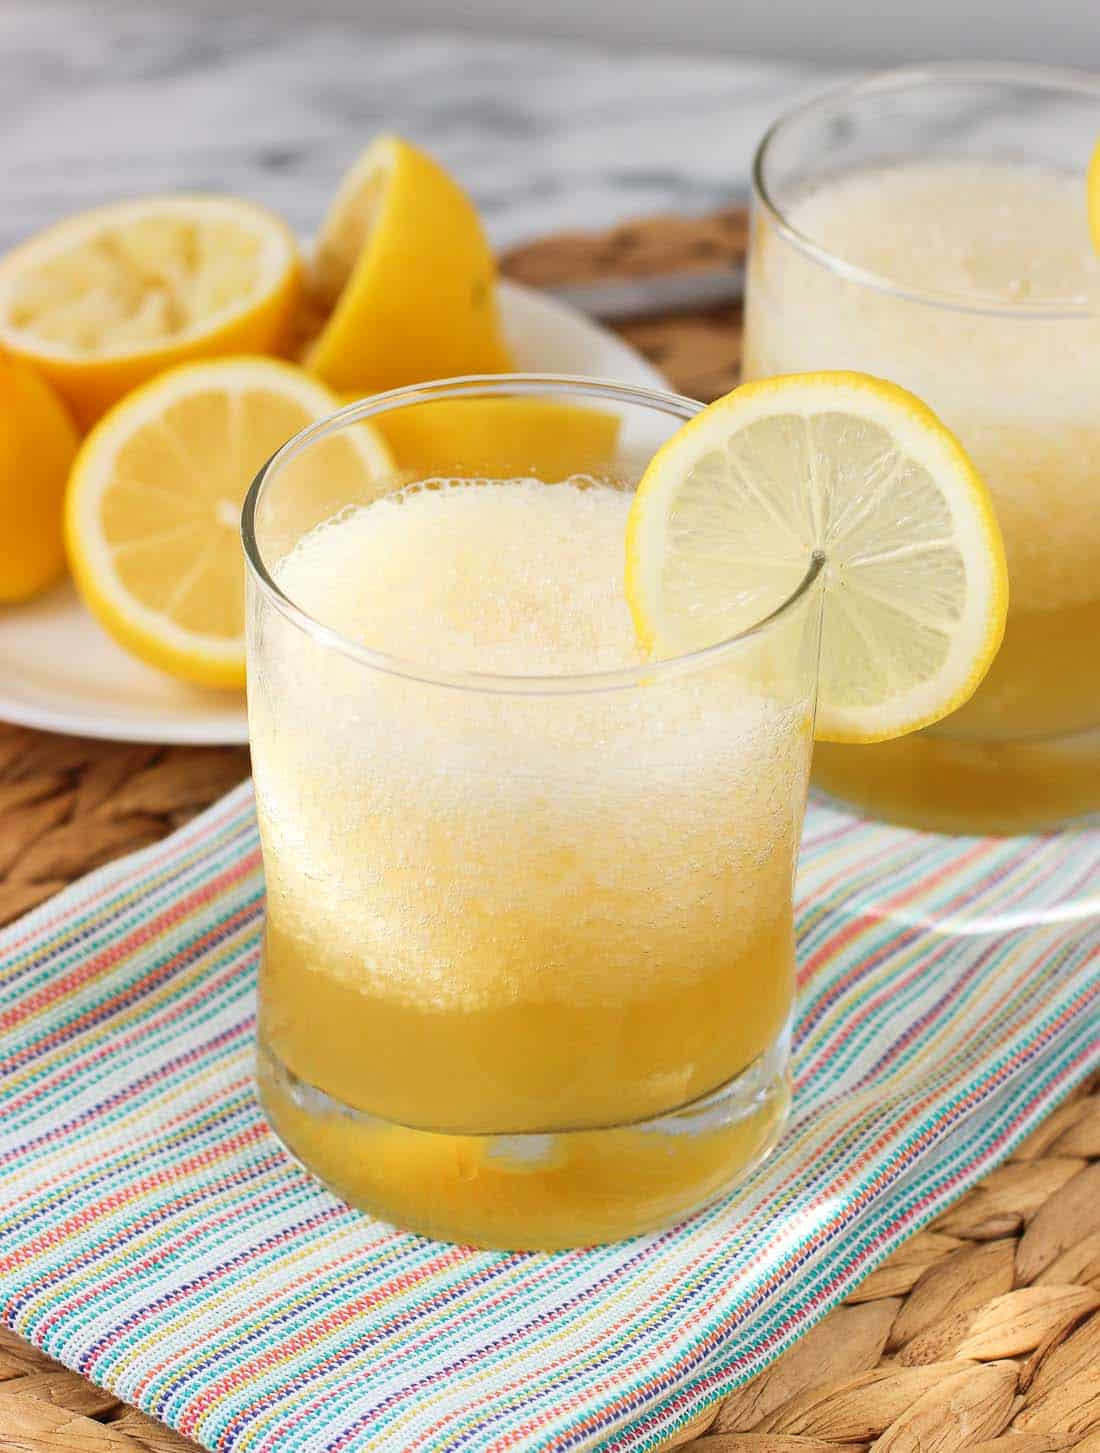 A gold rush cocktail with crushed ice in a short glass garnished with a lemon round with extra lemons in the background